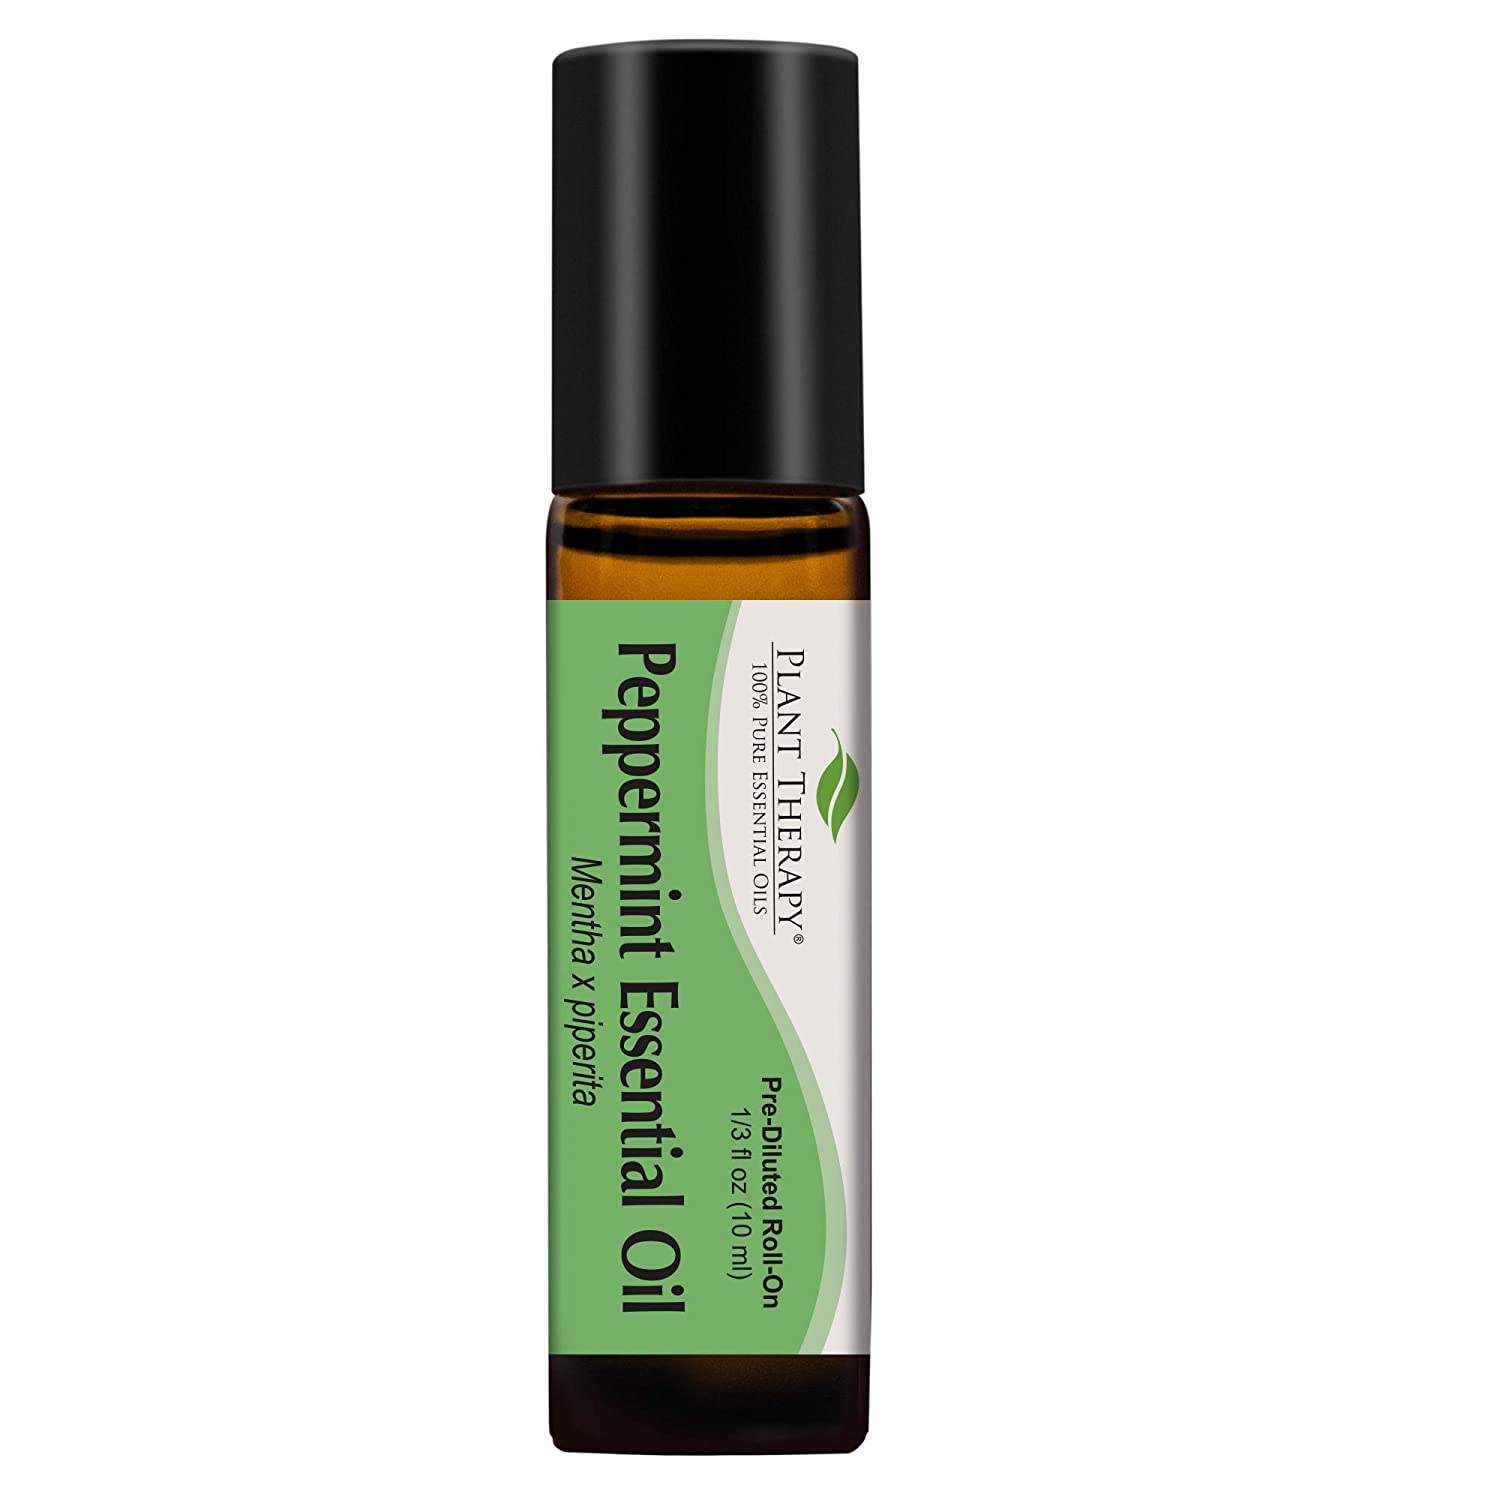 Plant Therapy Peppermint Essential Oil 100% Pure, Pre-Diluted Roll-On, Natural Aromatherapy, Therapeutic Grade 10 mL (1/3 oz)